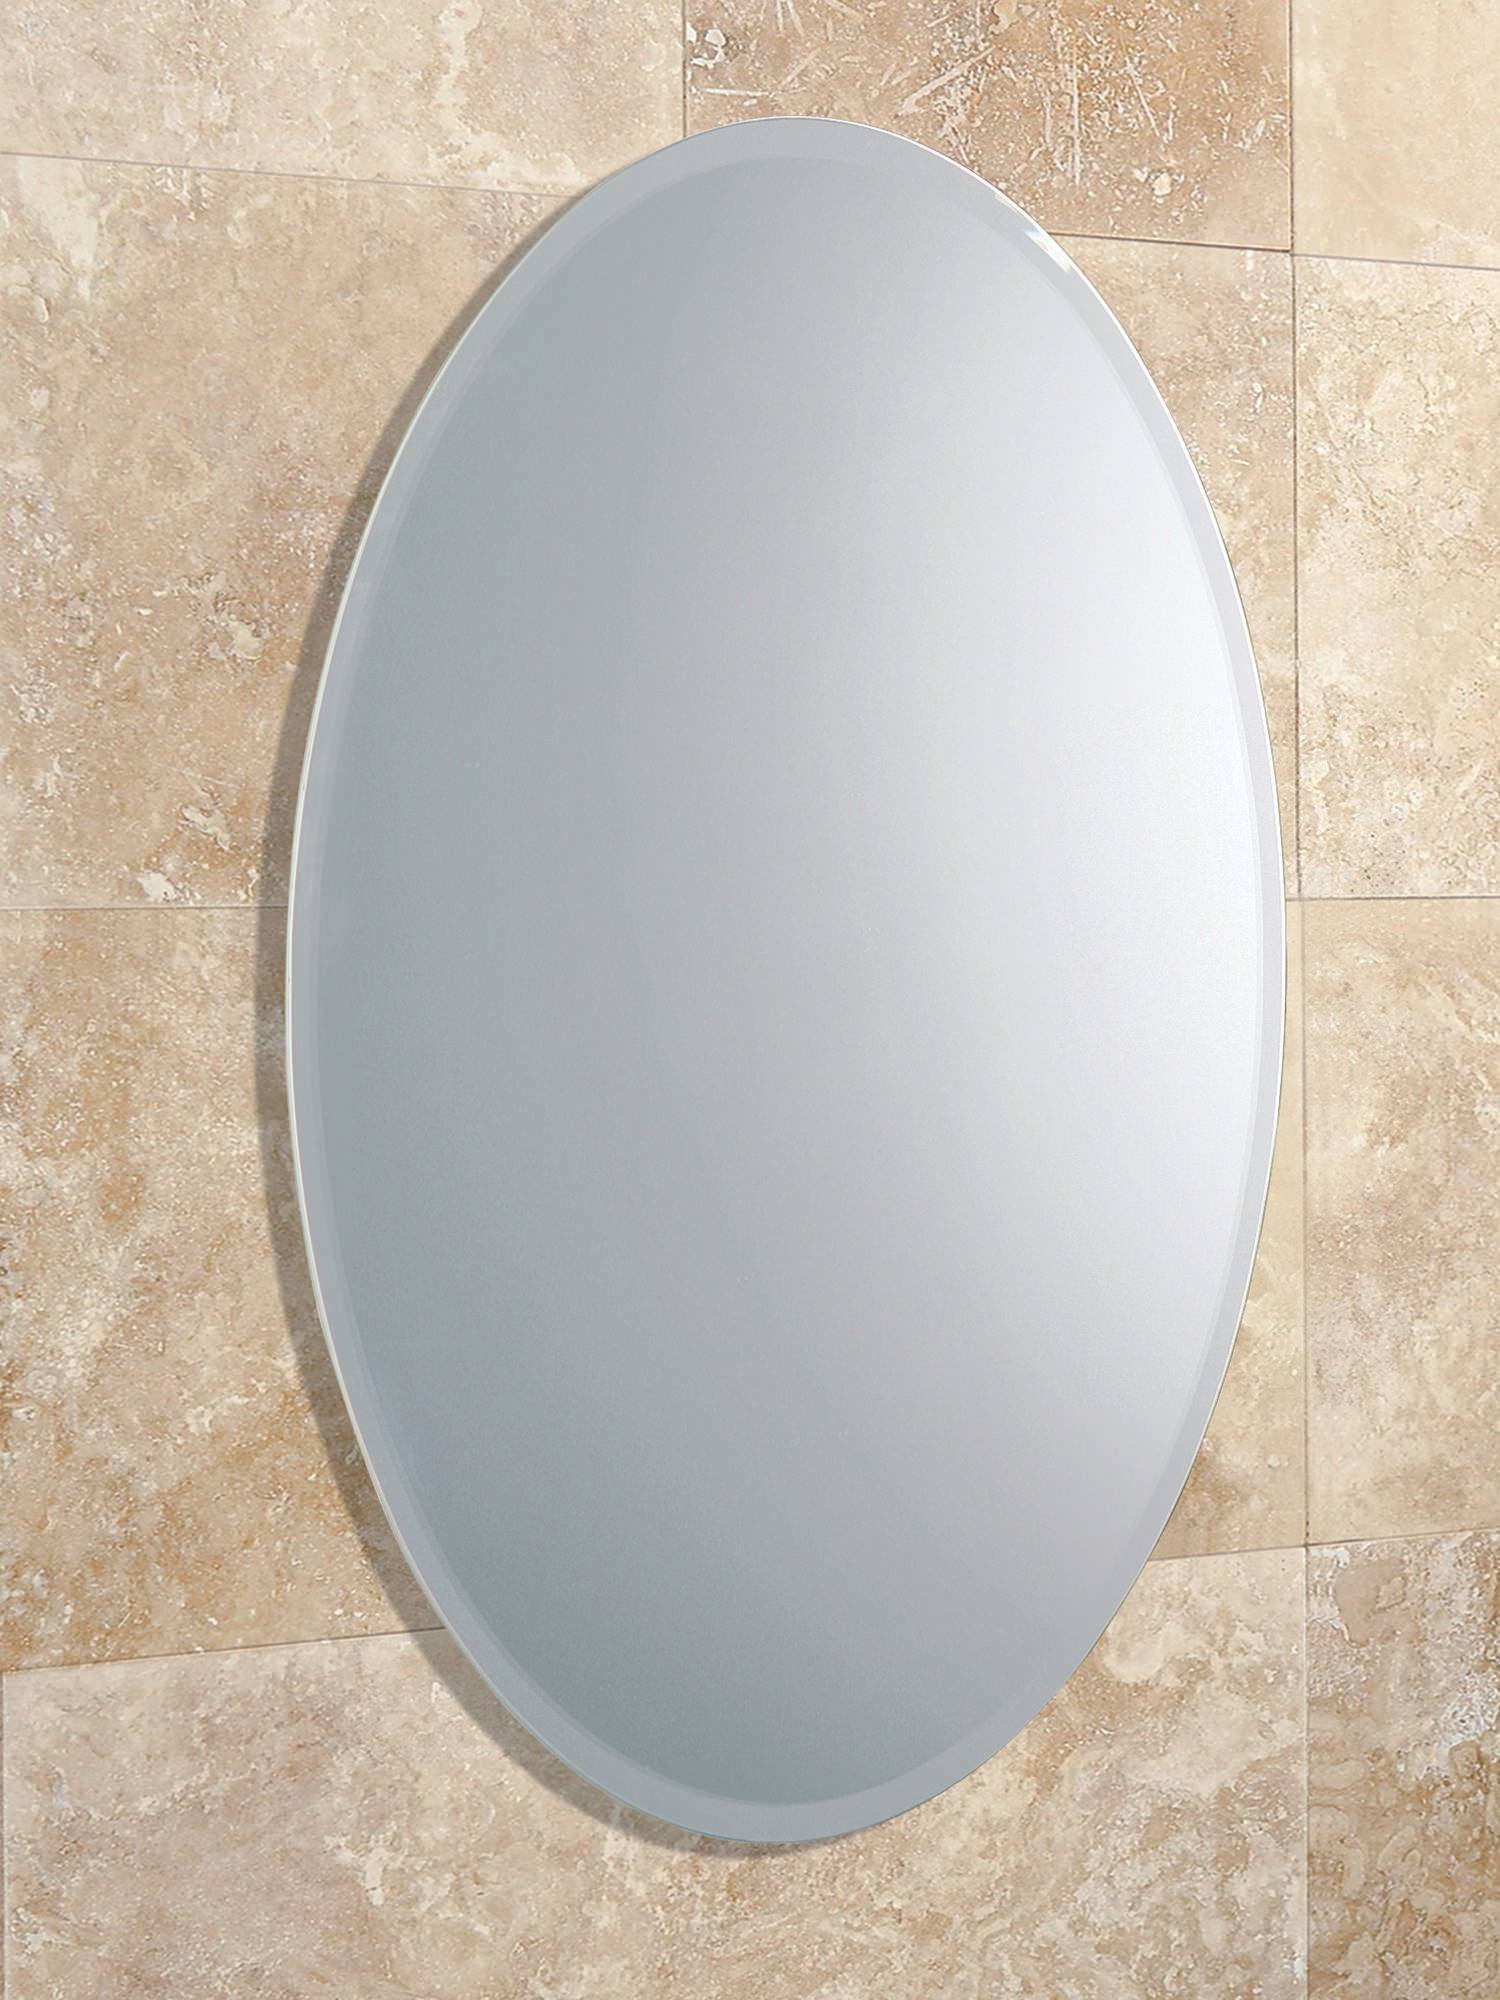 Mirror : Bevelled Oval Mirror Awe-Inspiring Bevelled Edge Oval with regard to Oval Bevelled Mirrors (Image 8 of 15)